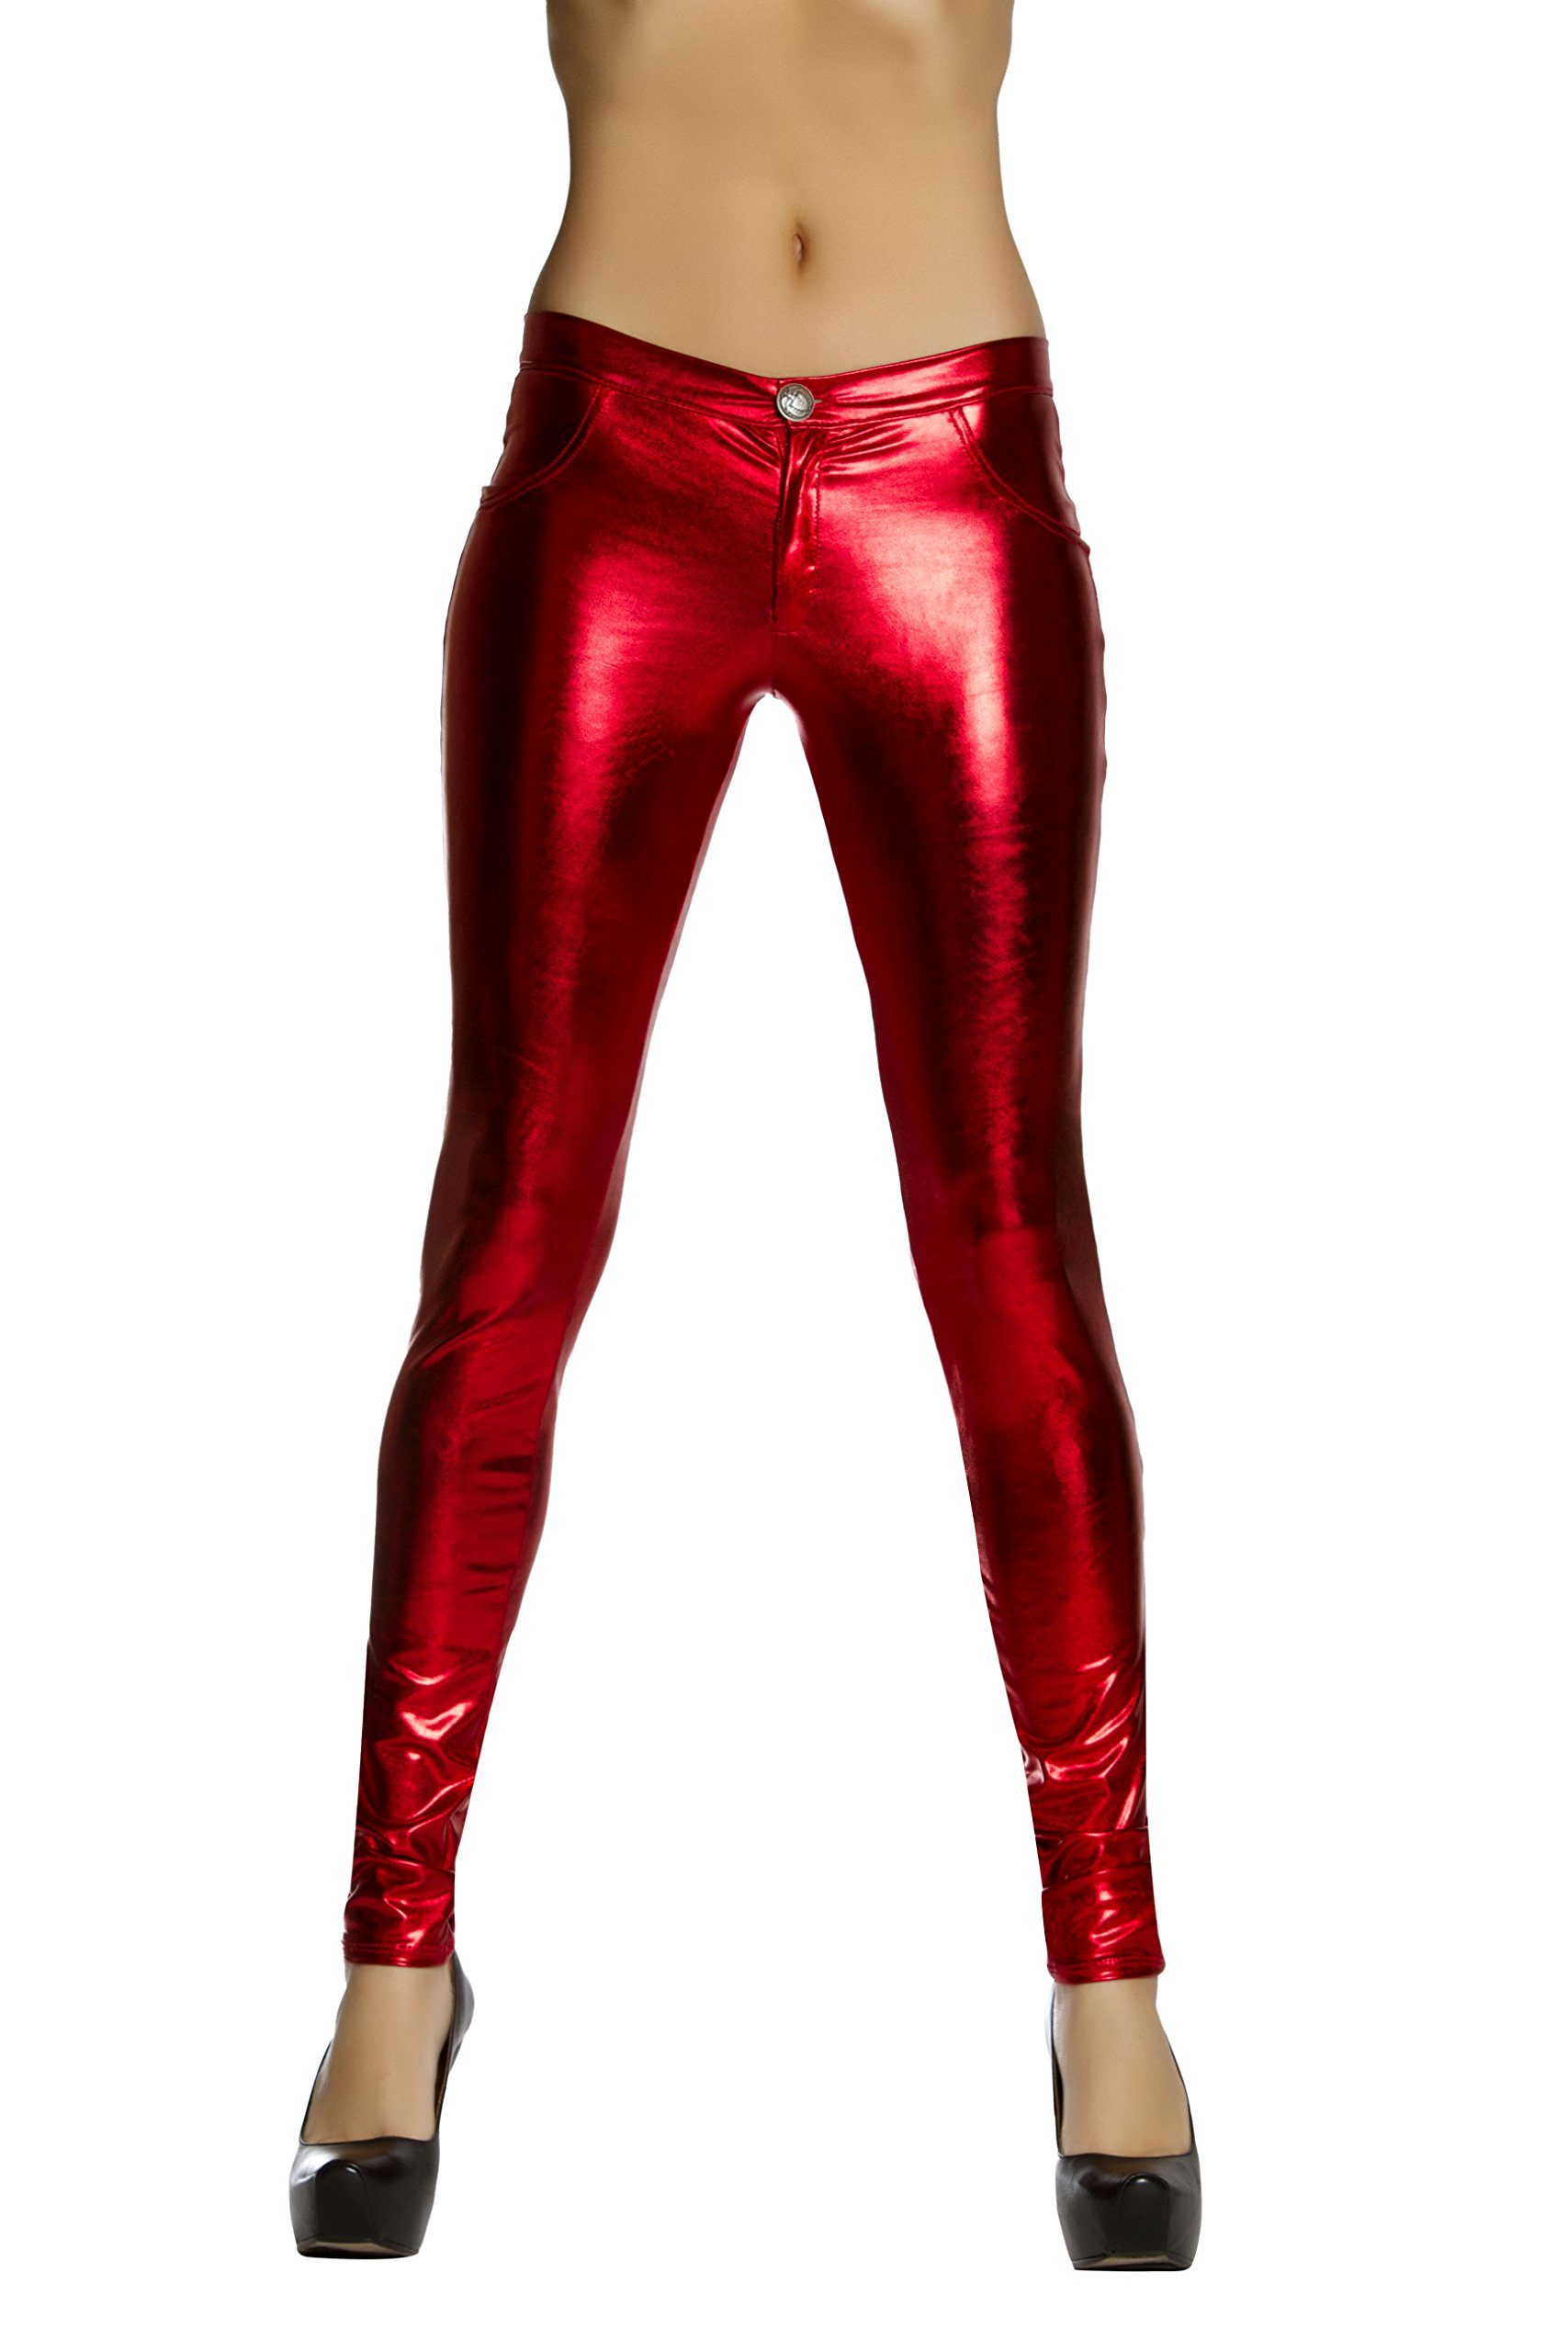 Roma Women's Metallic Button Front Pants with Pocket Detail, Red, Large